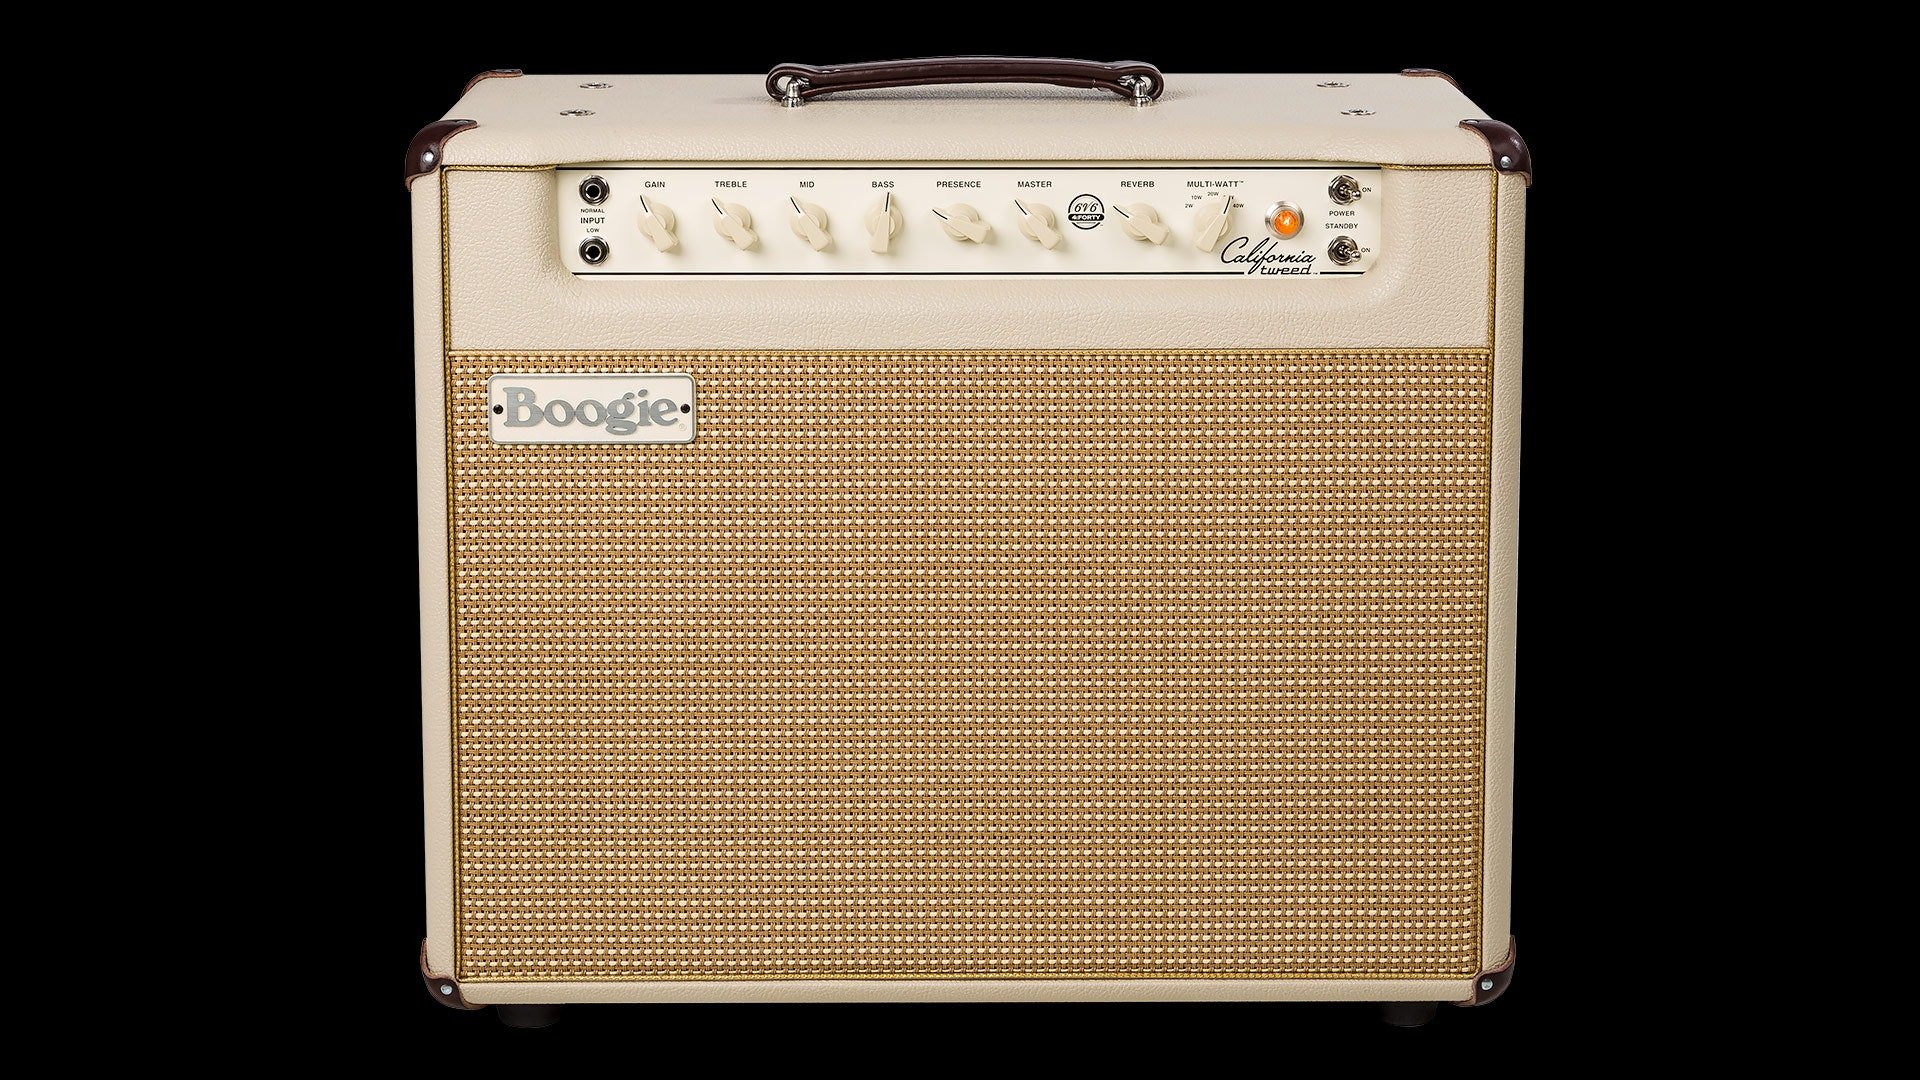 Mesa Boogie California Tweed 1x12 Combo